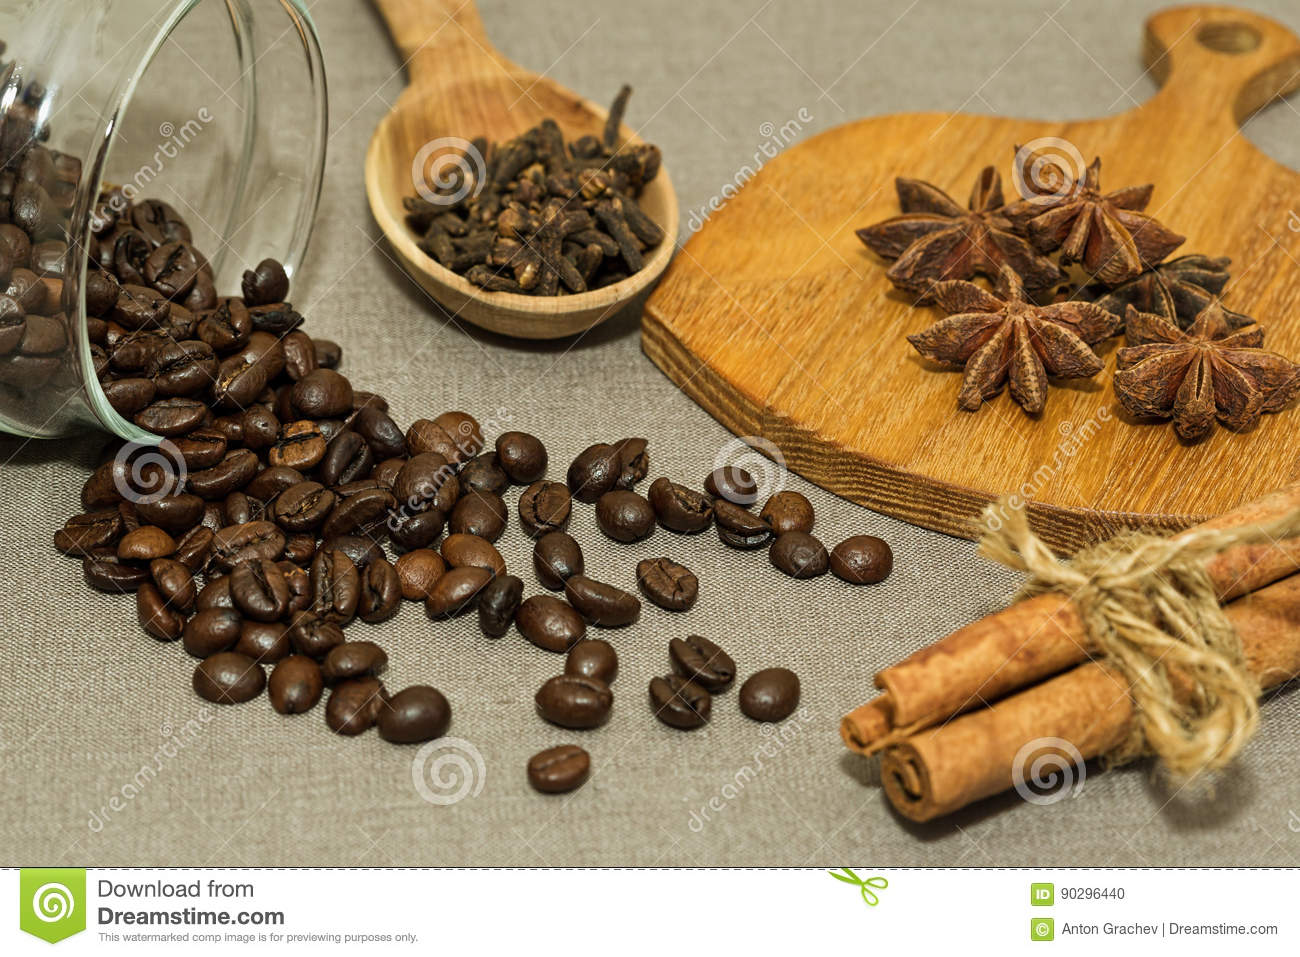 Roasted coffee beans and different spices